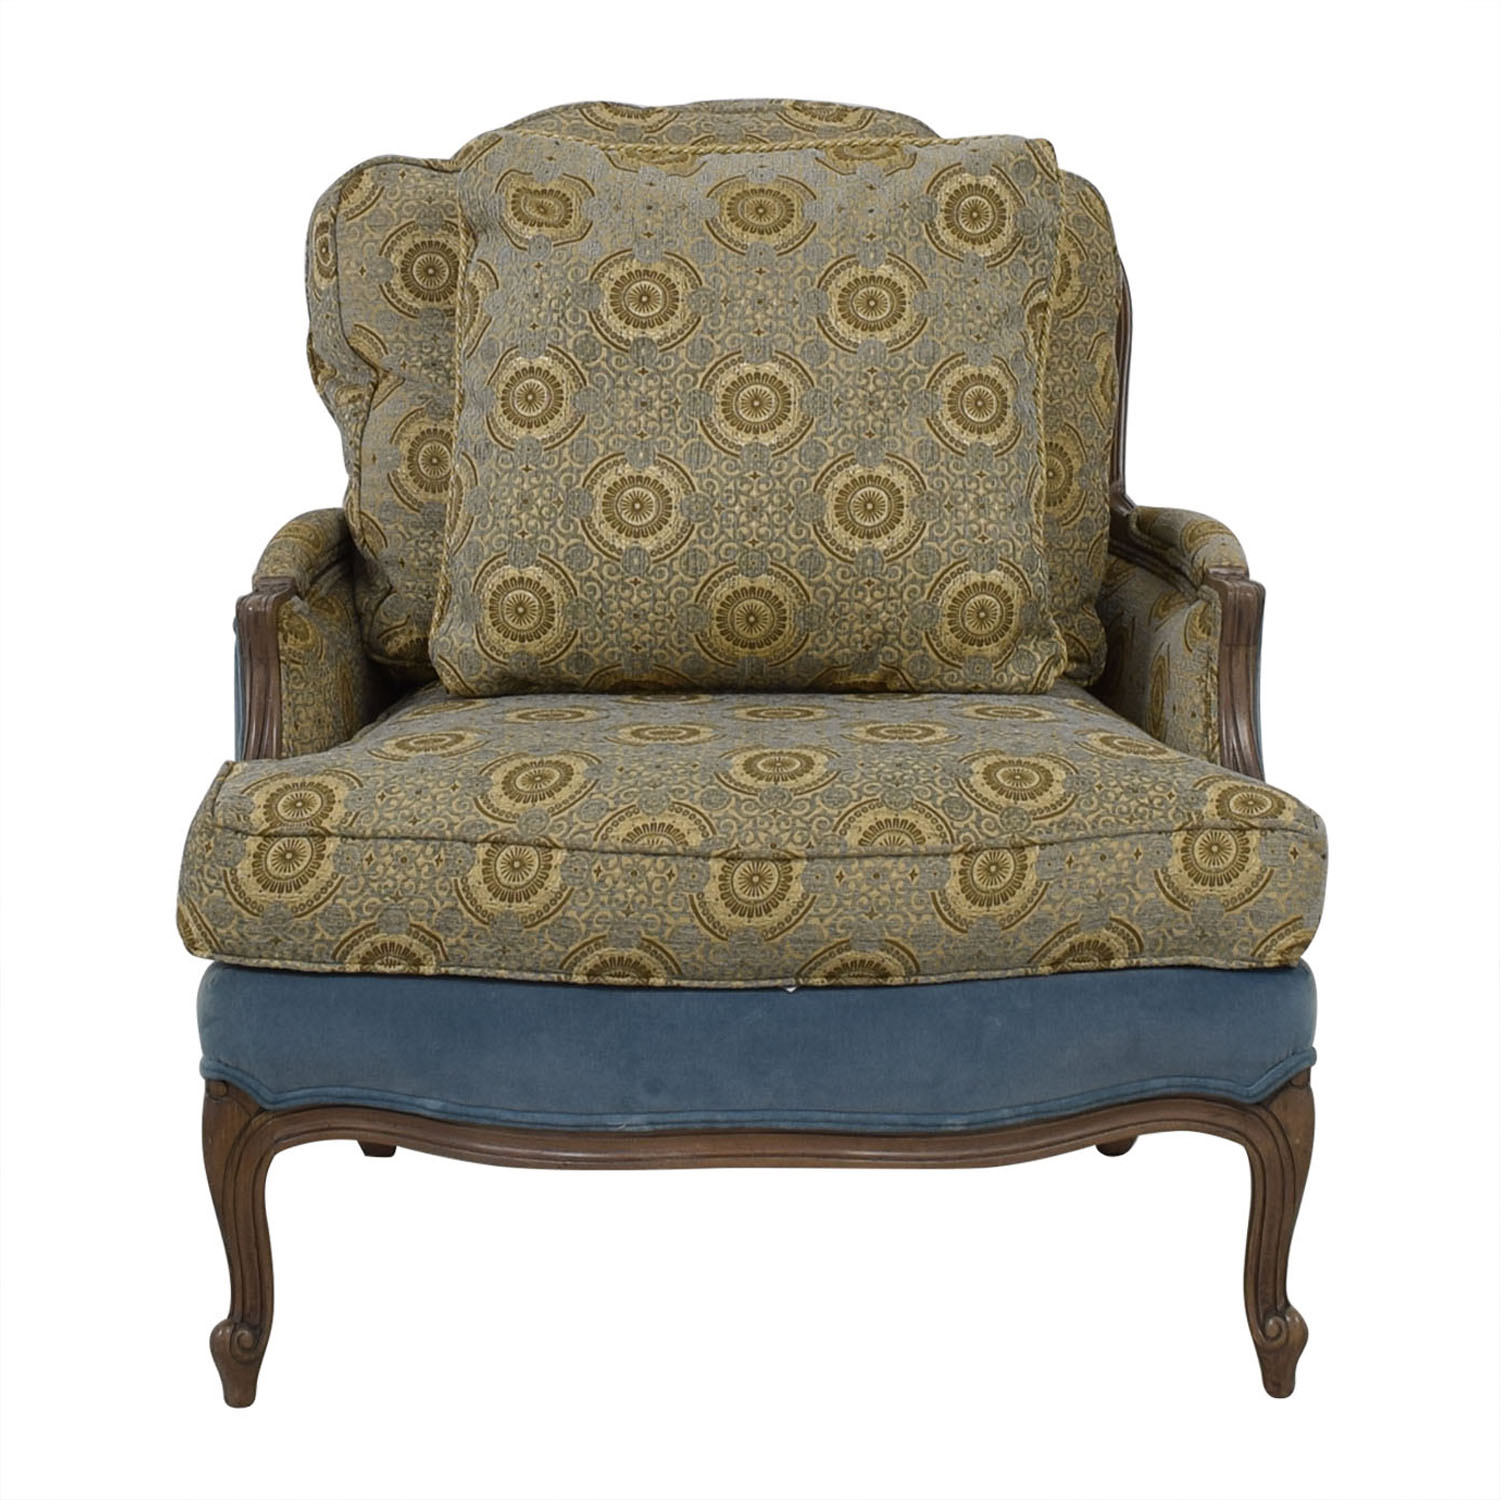 Ethan Allen Blue and Beige Accent Chair / Chairs